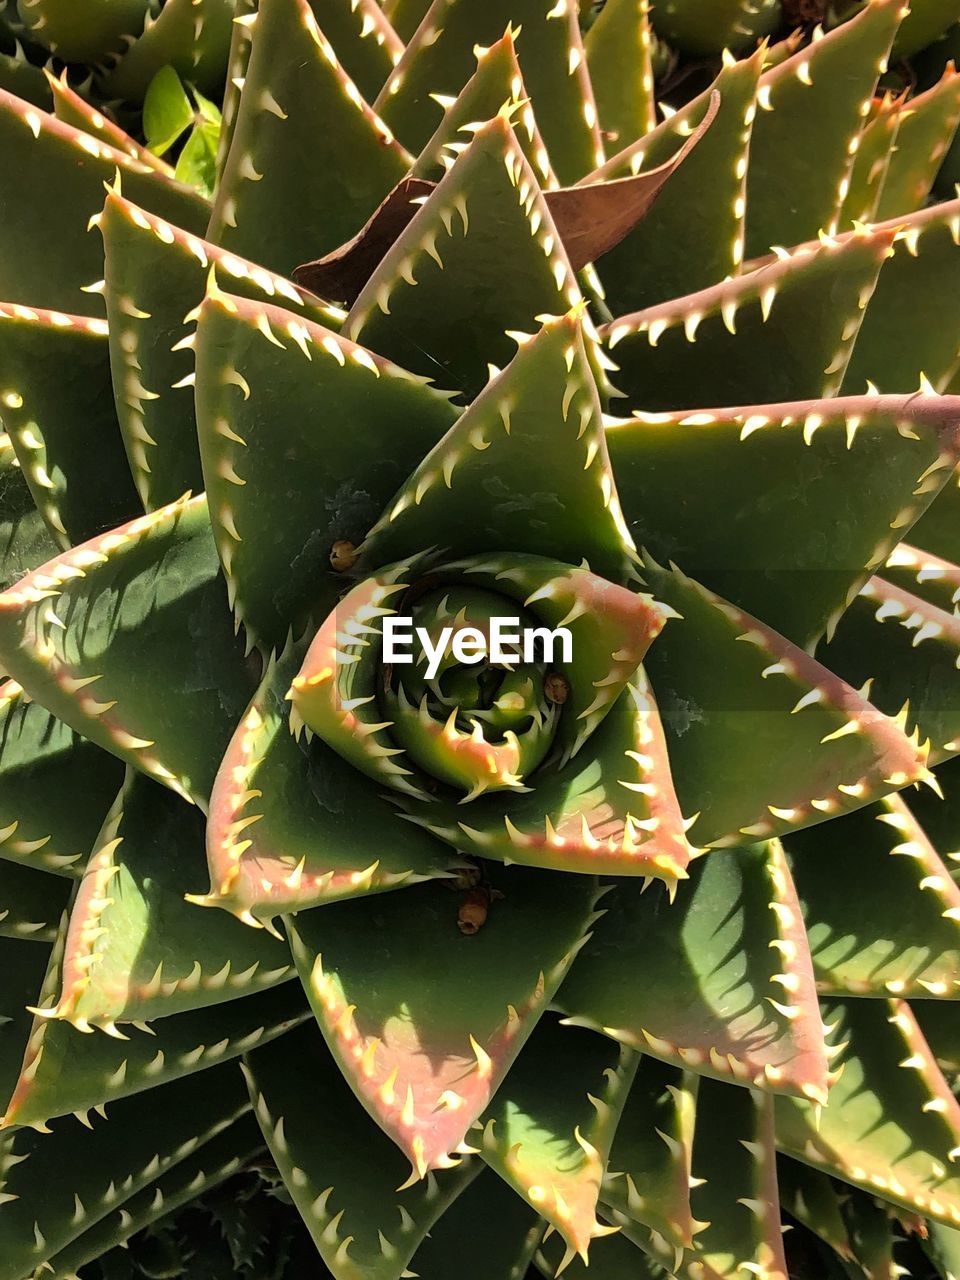 growth, green color, cactus, plant, thorn, nature, leaf, spiked, no people, outdoors, close-up, aloe vera plant, directly above, beauty in nature, day, freshness